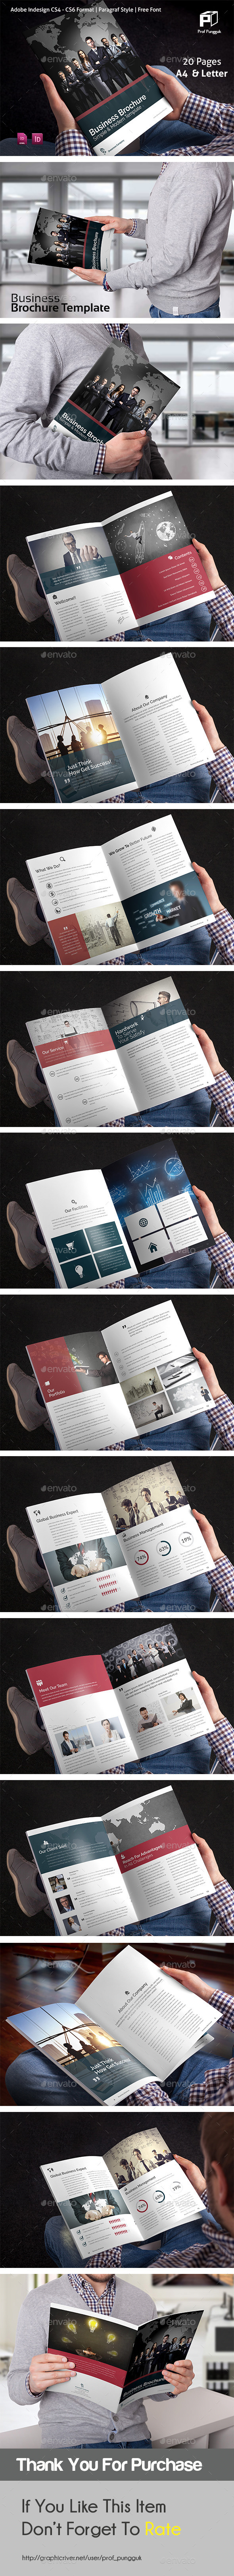 GraphicRiver Corporate Brochure Vol.4 11834206